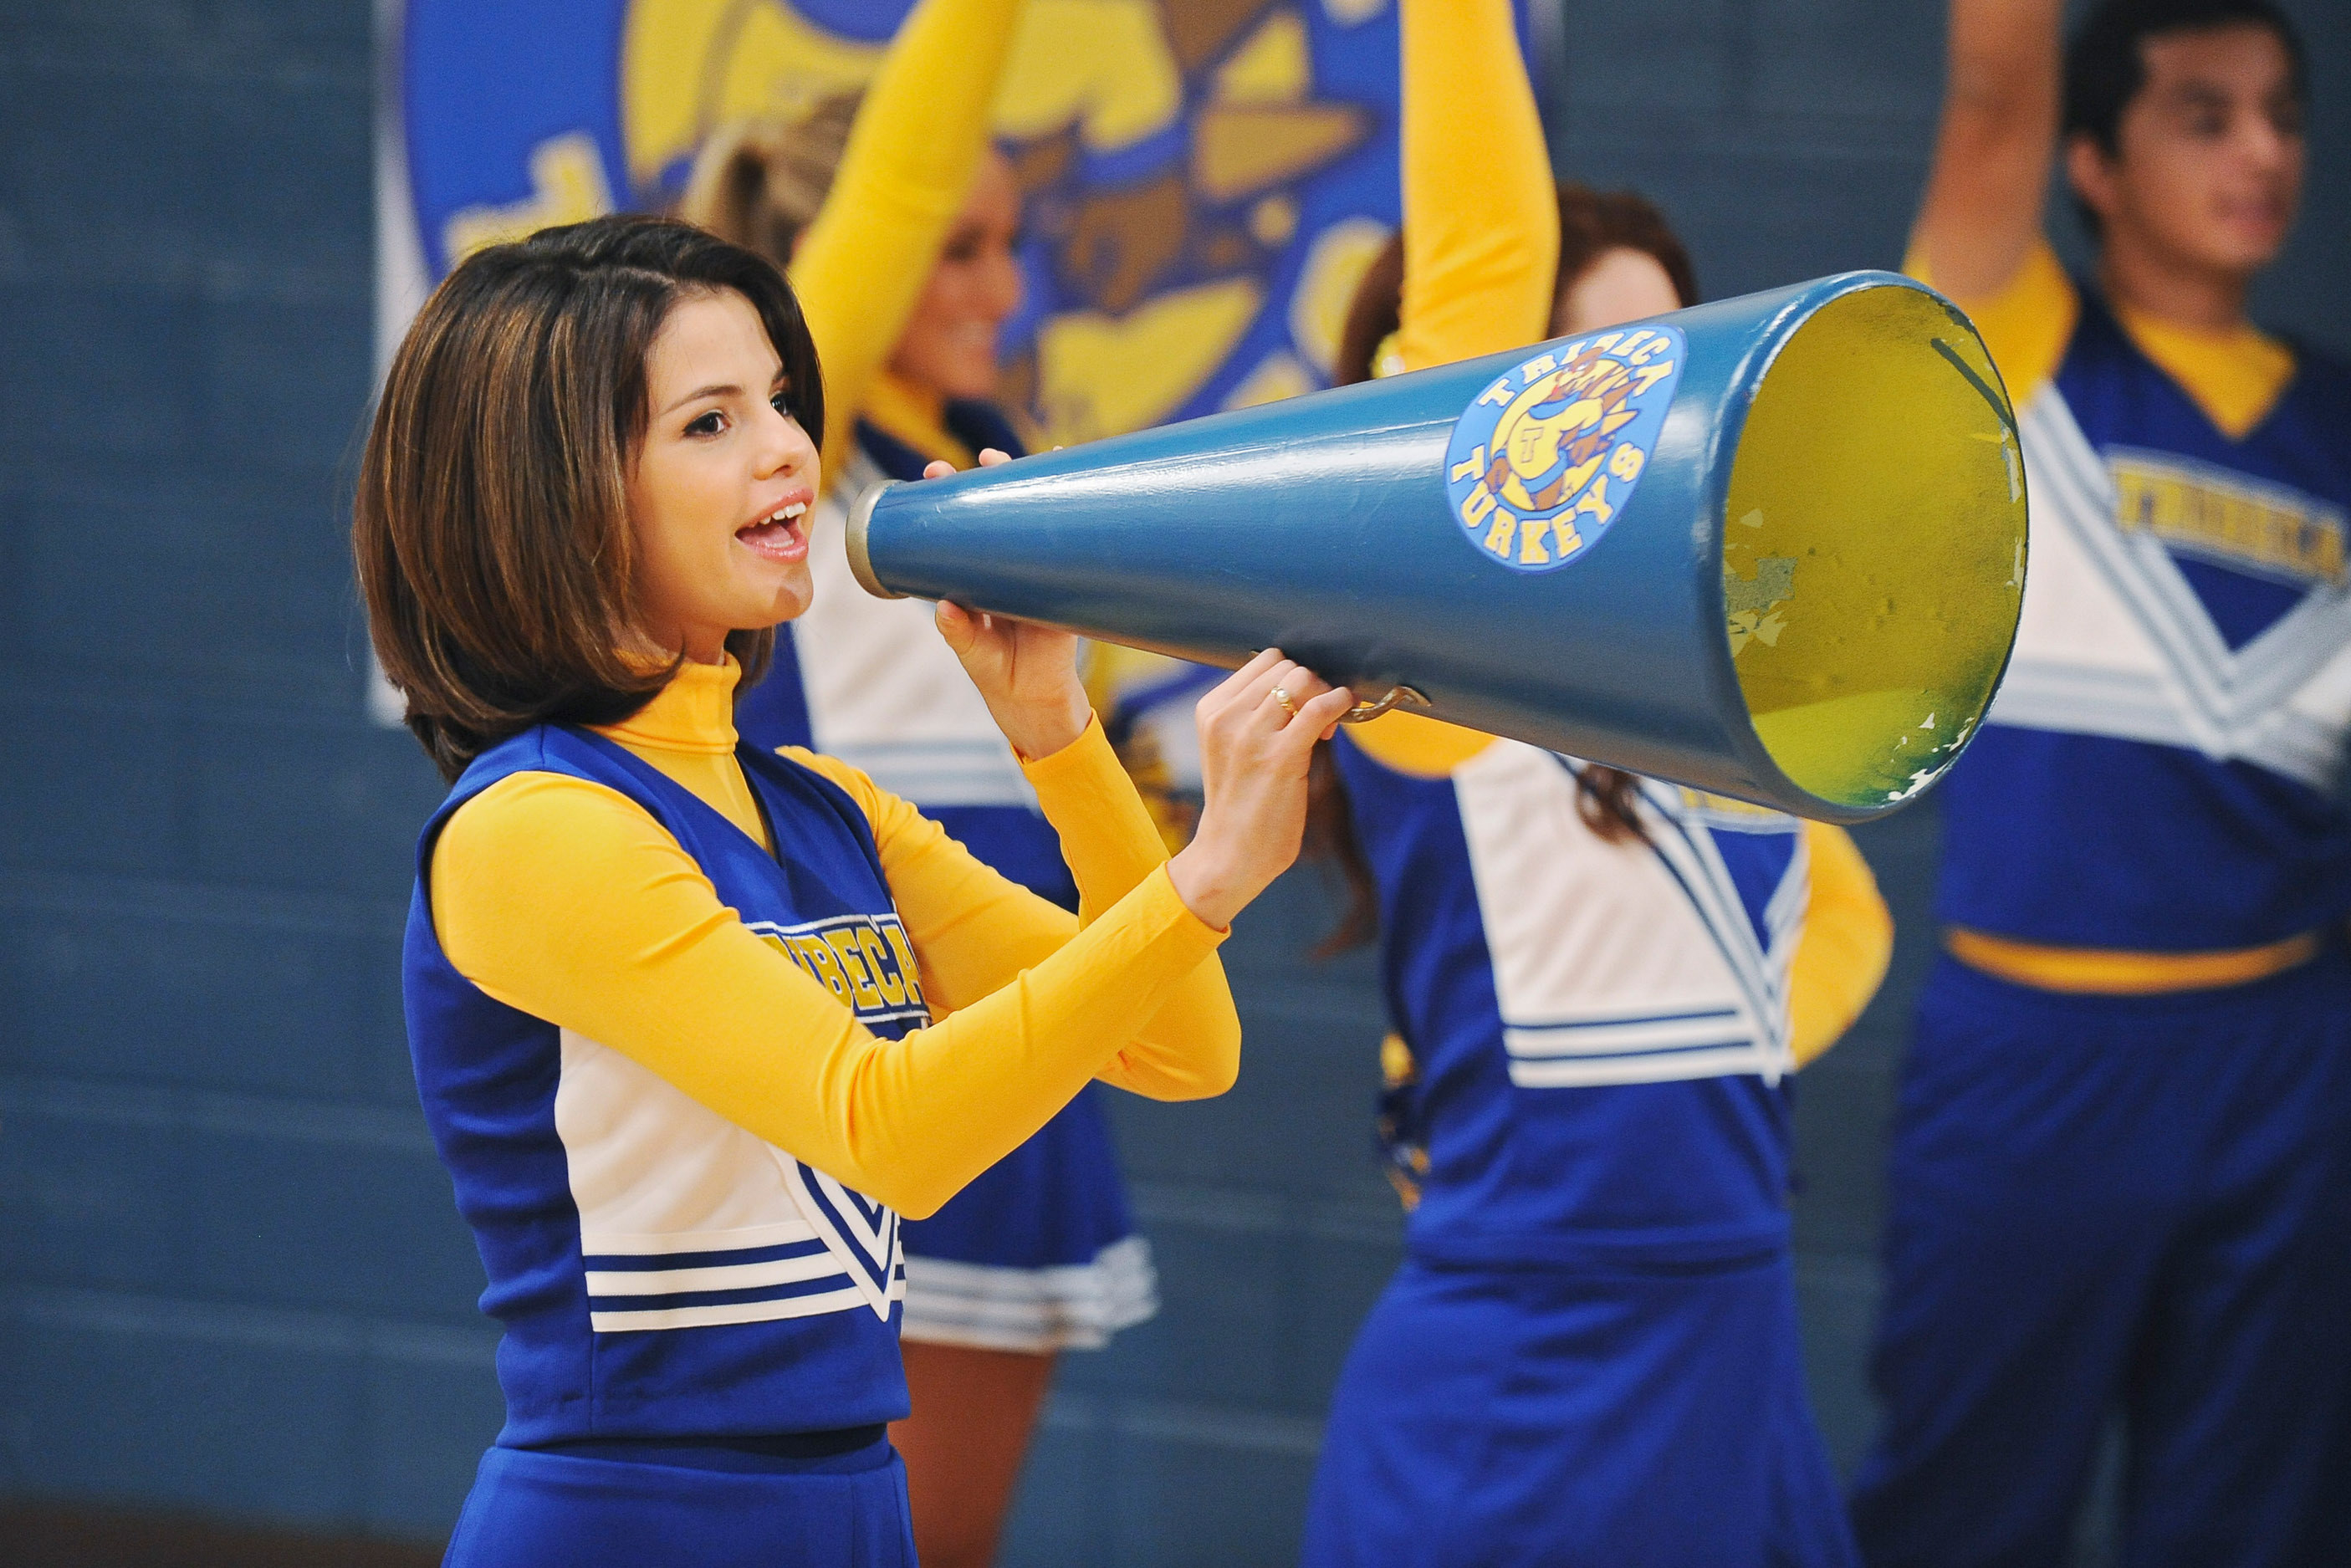 Selena Gomez in a cheerleading outfit shouts into a megaphone